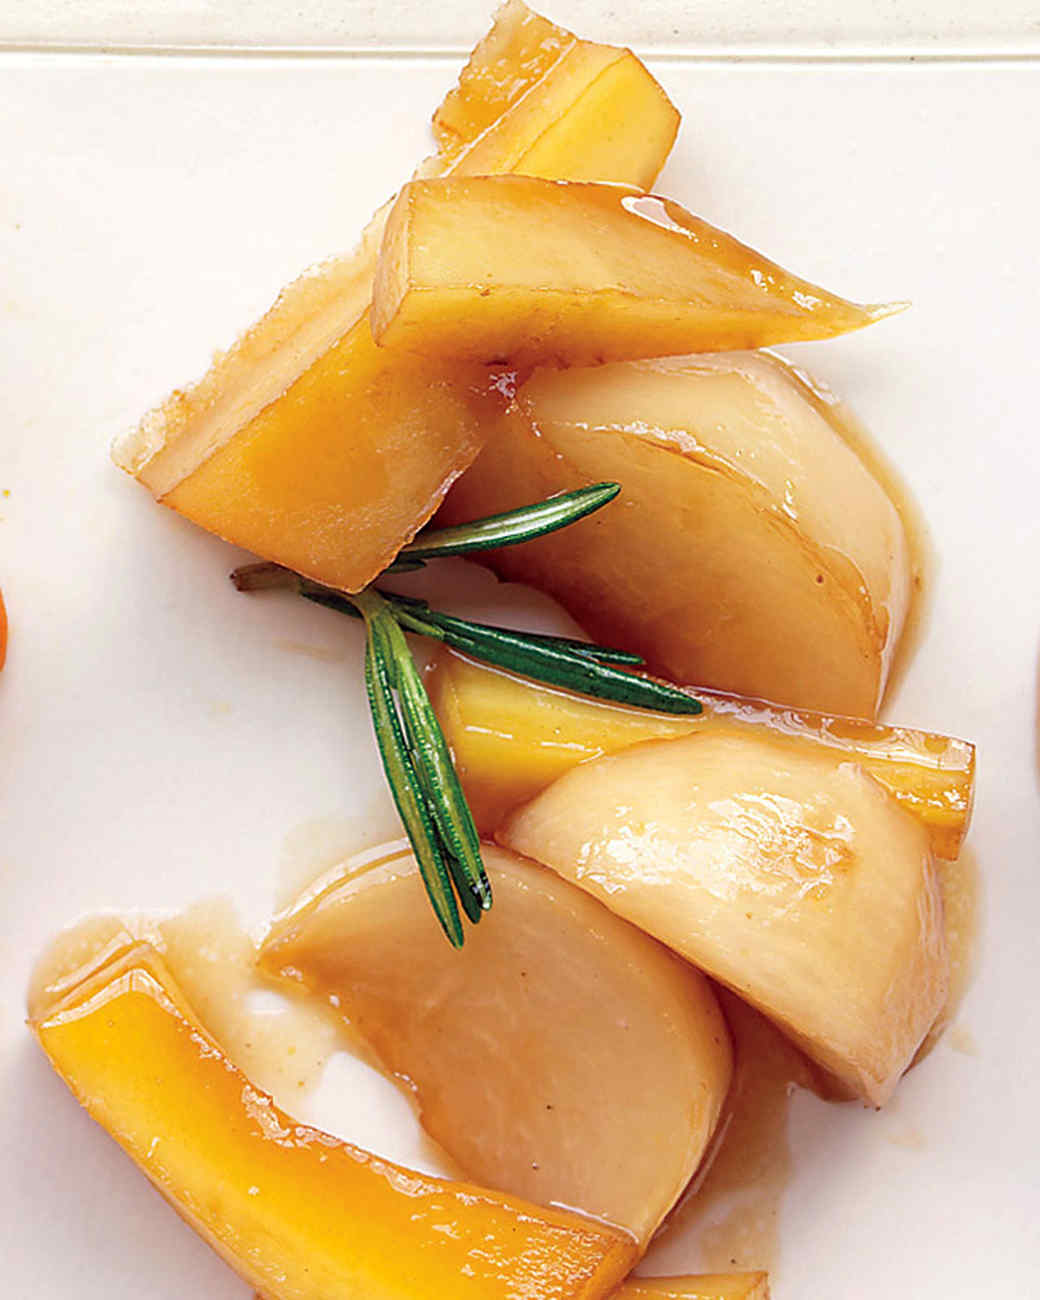 Glazed Turnips and Parsnips with Maple Syrup